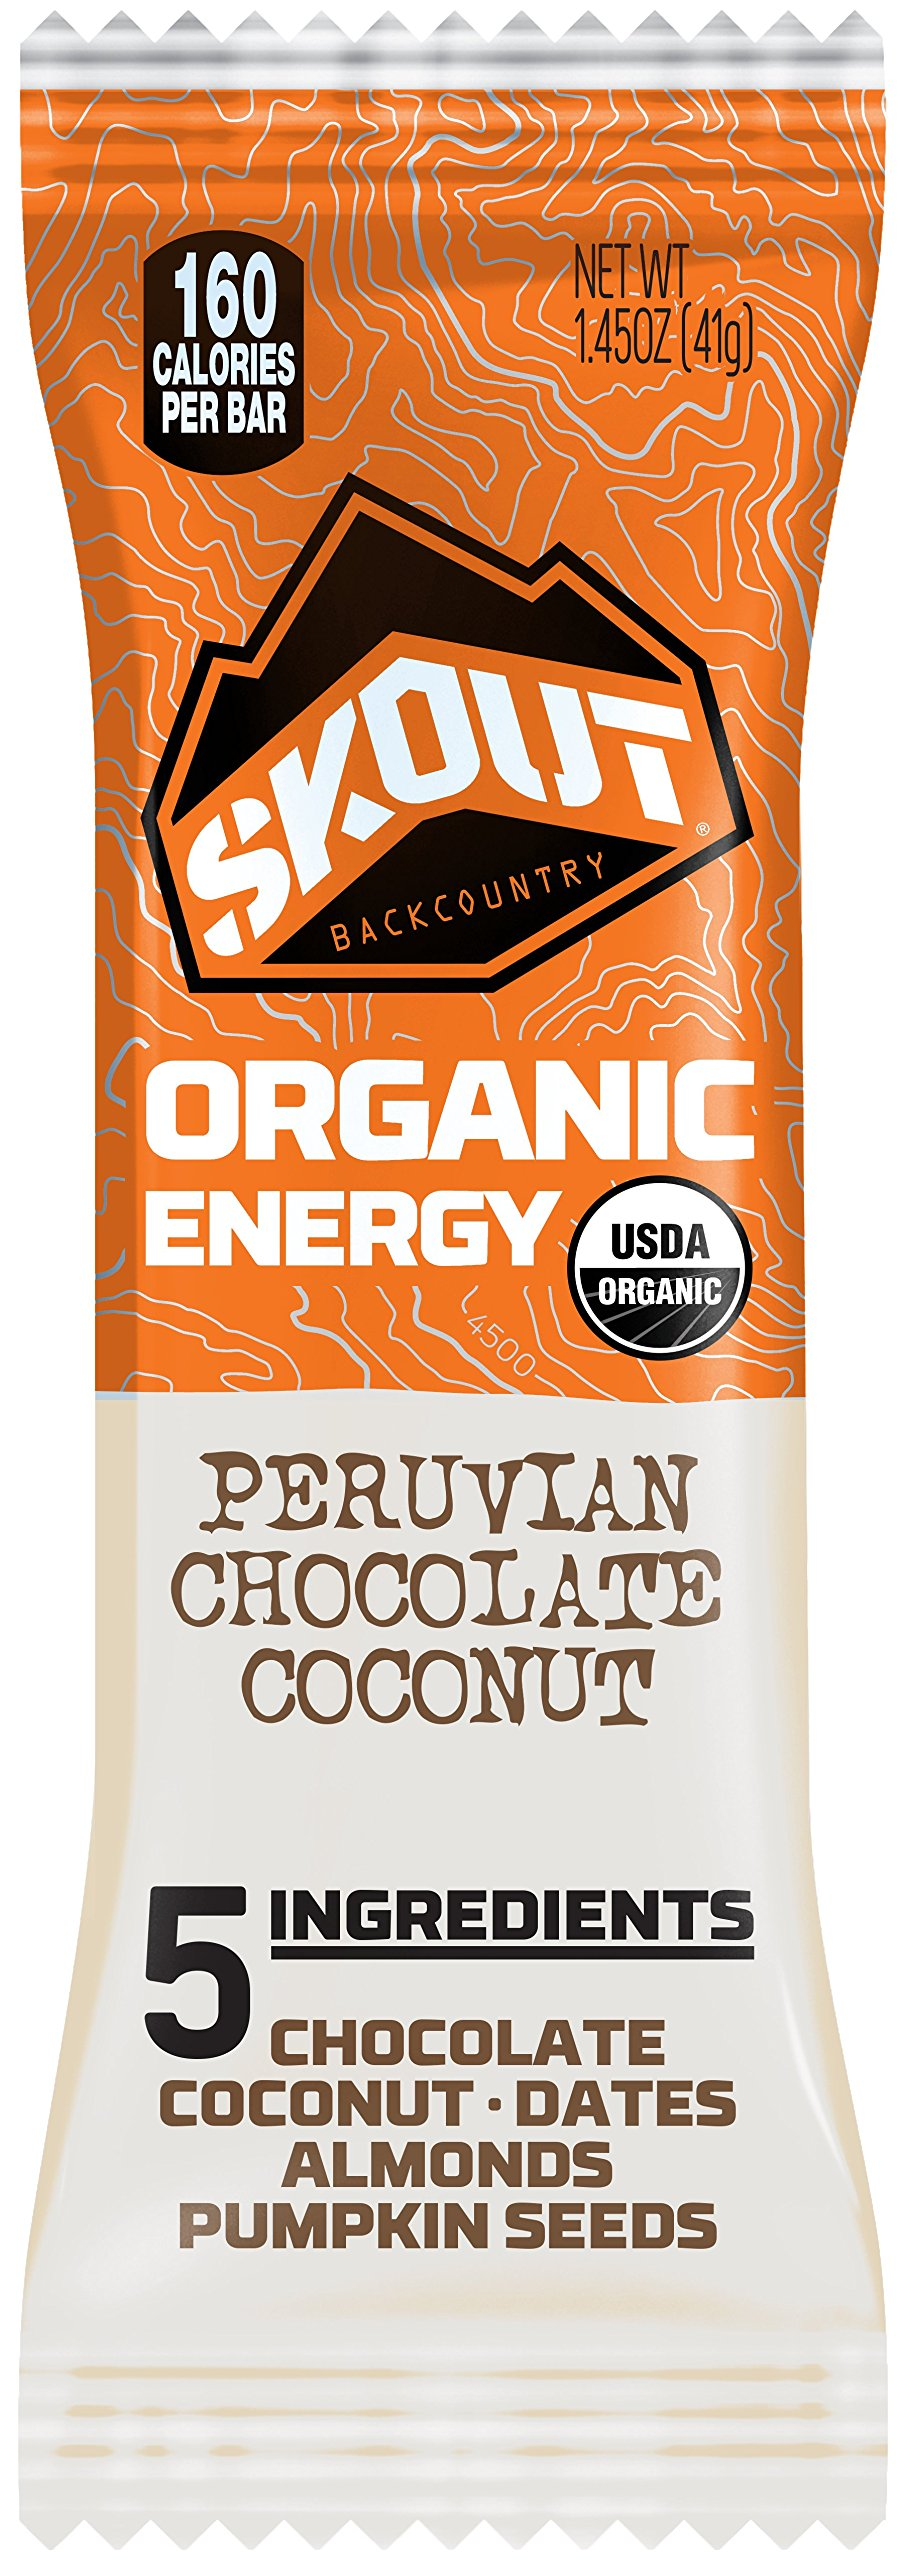 Skout Organic Energy Bar, Peruvian Chocolate Coconut, 12 Bars by Skout Backcountry